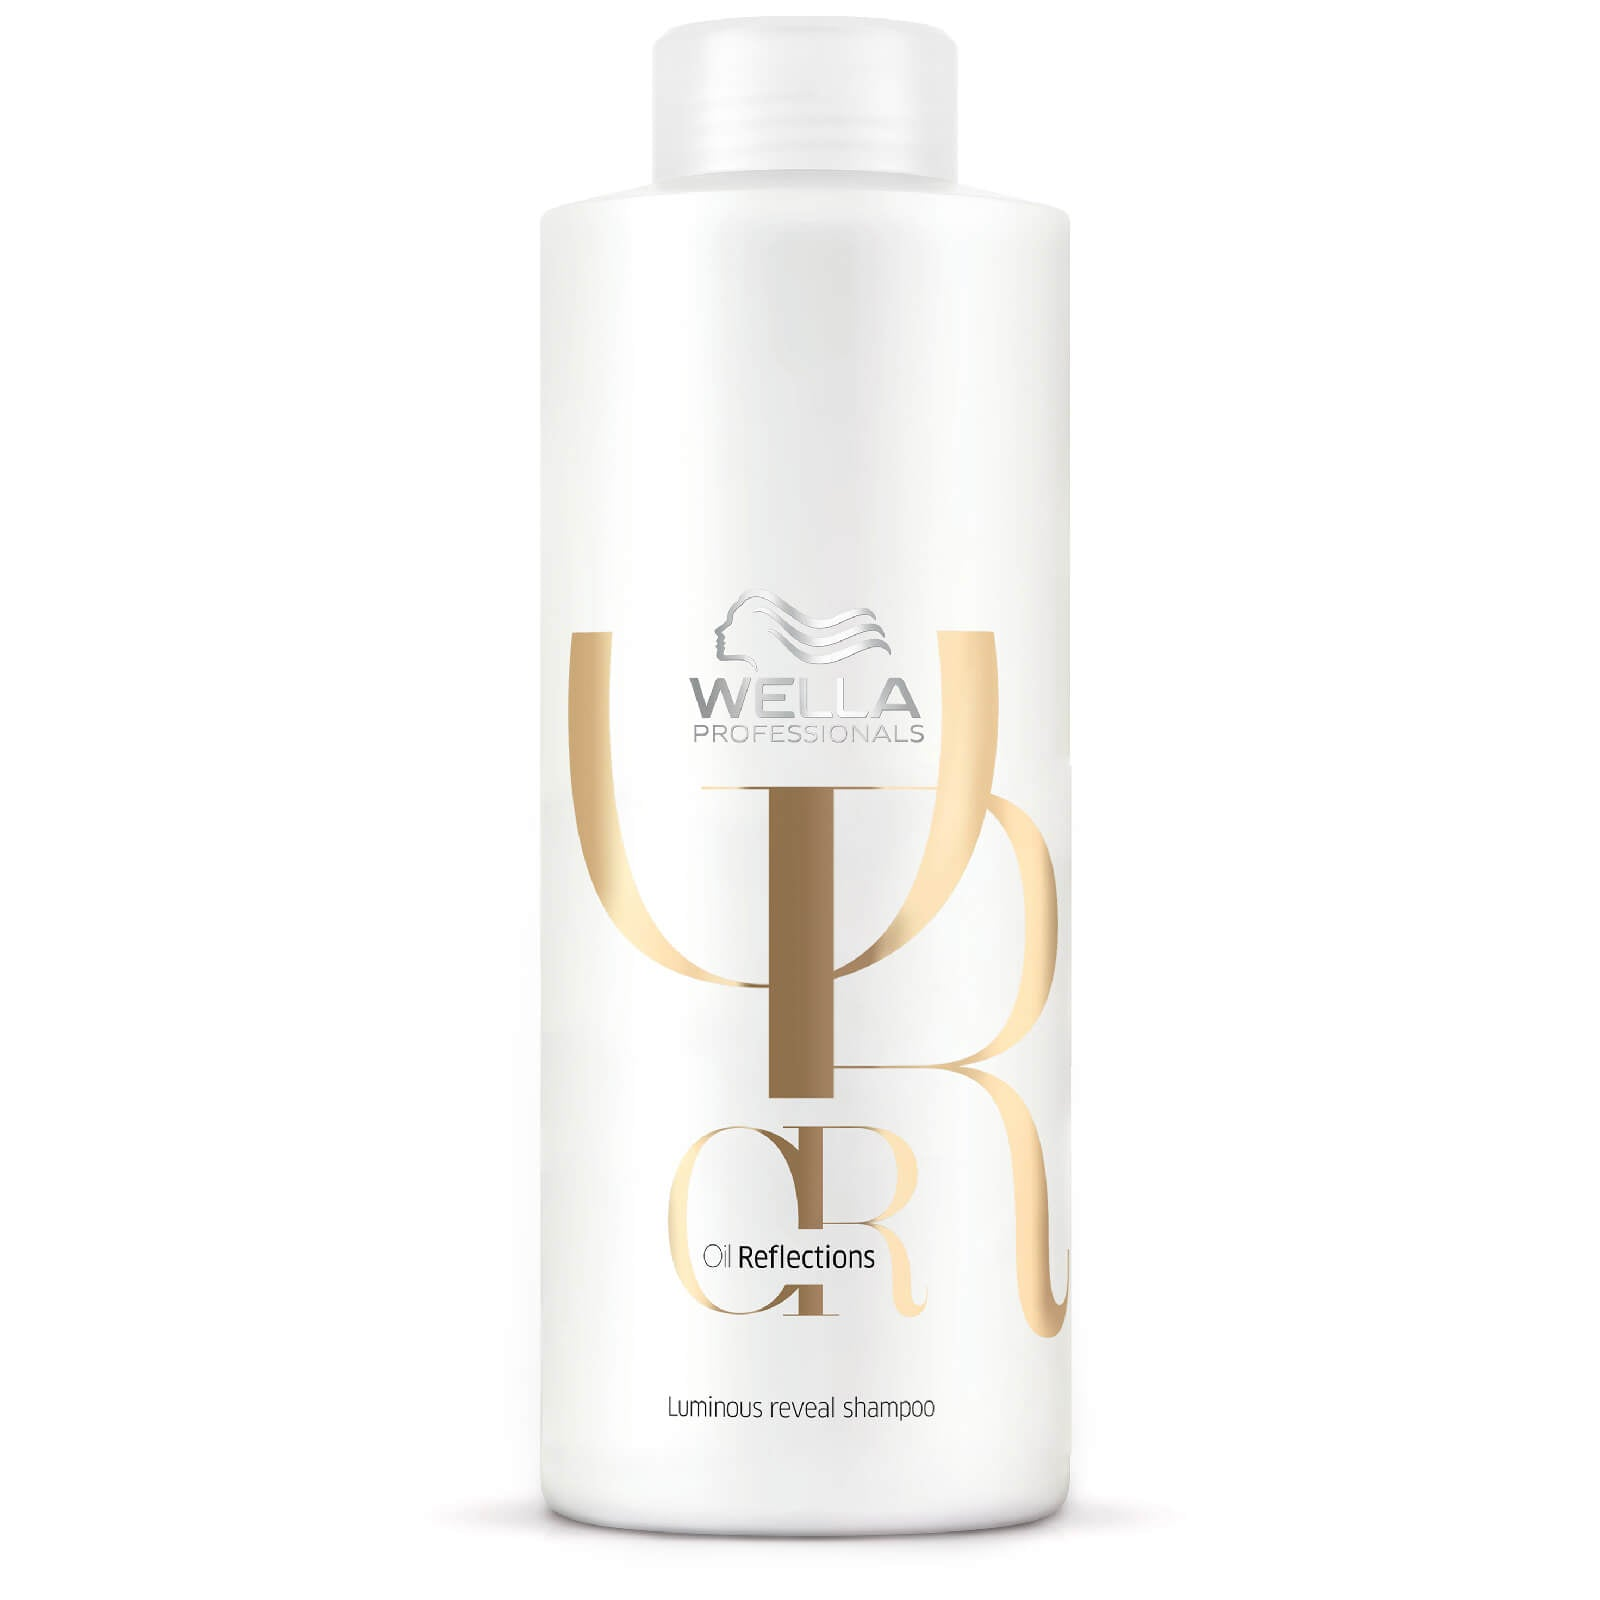 Wella Professionals - Oil Reflections Reveal Shampoo 1000mL - WAHairSuppliers